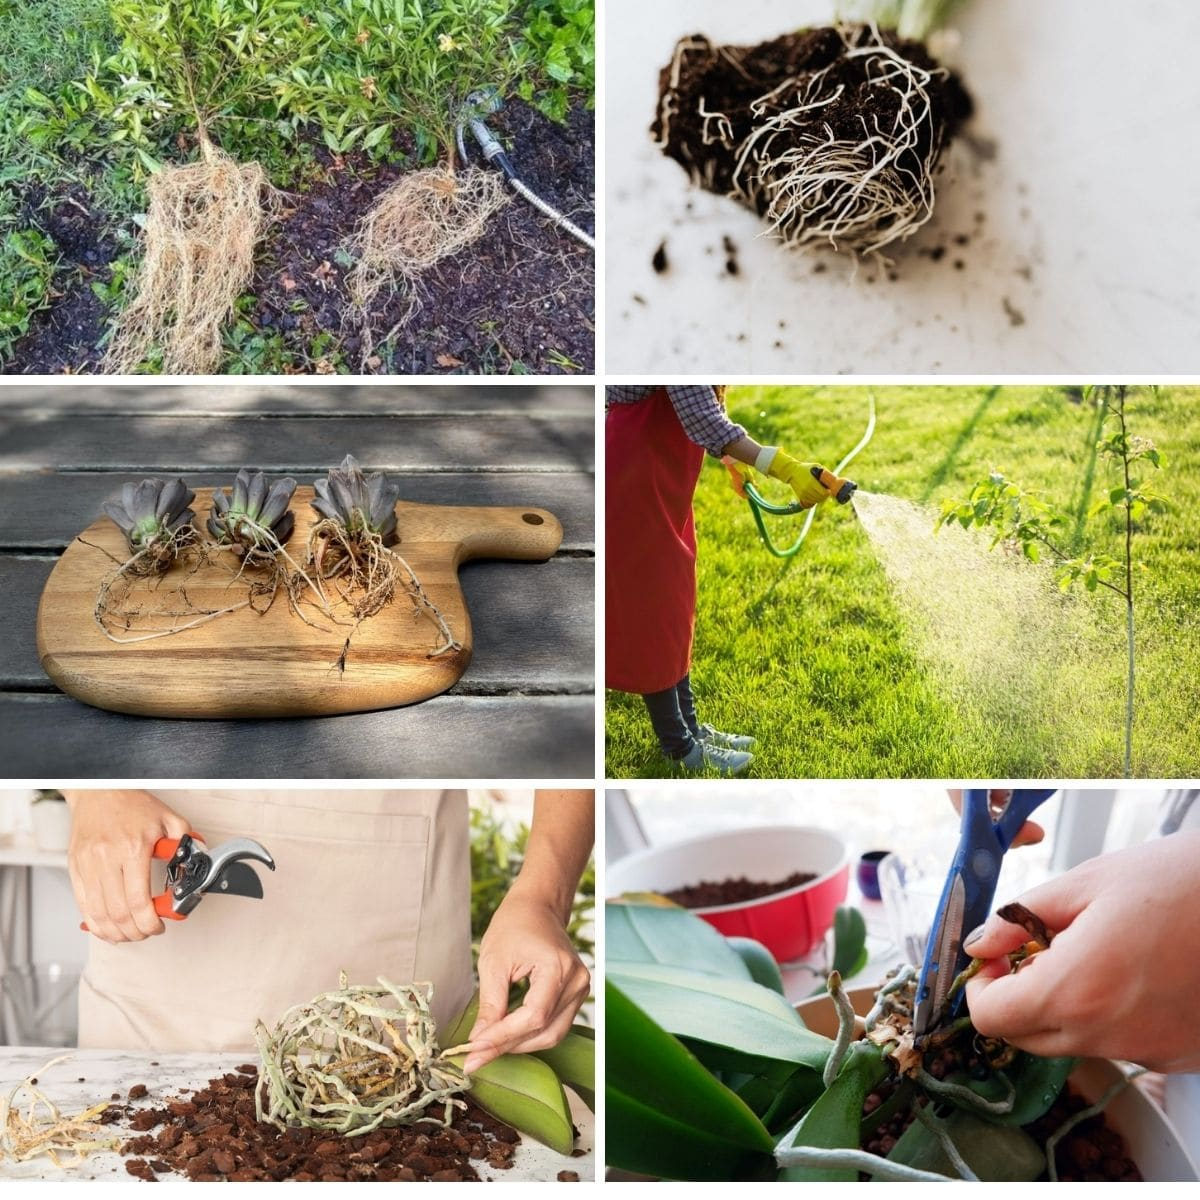 Examples of root washing.